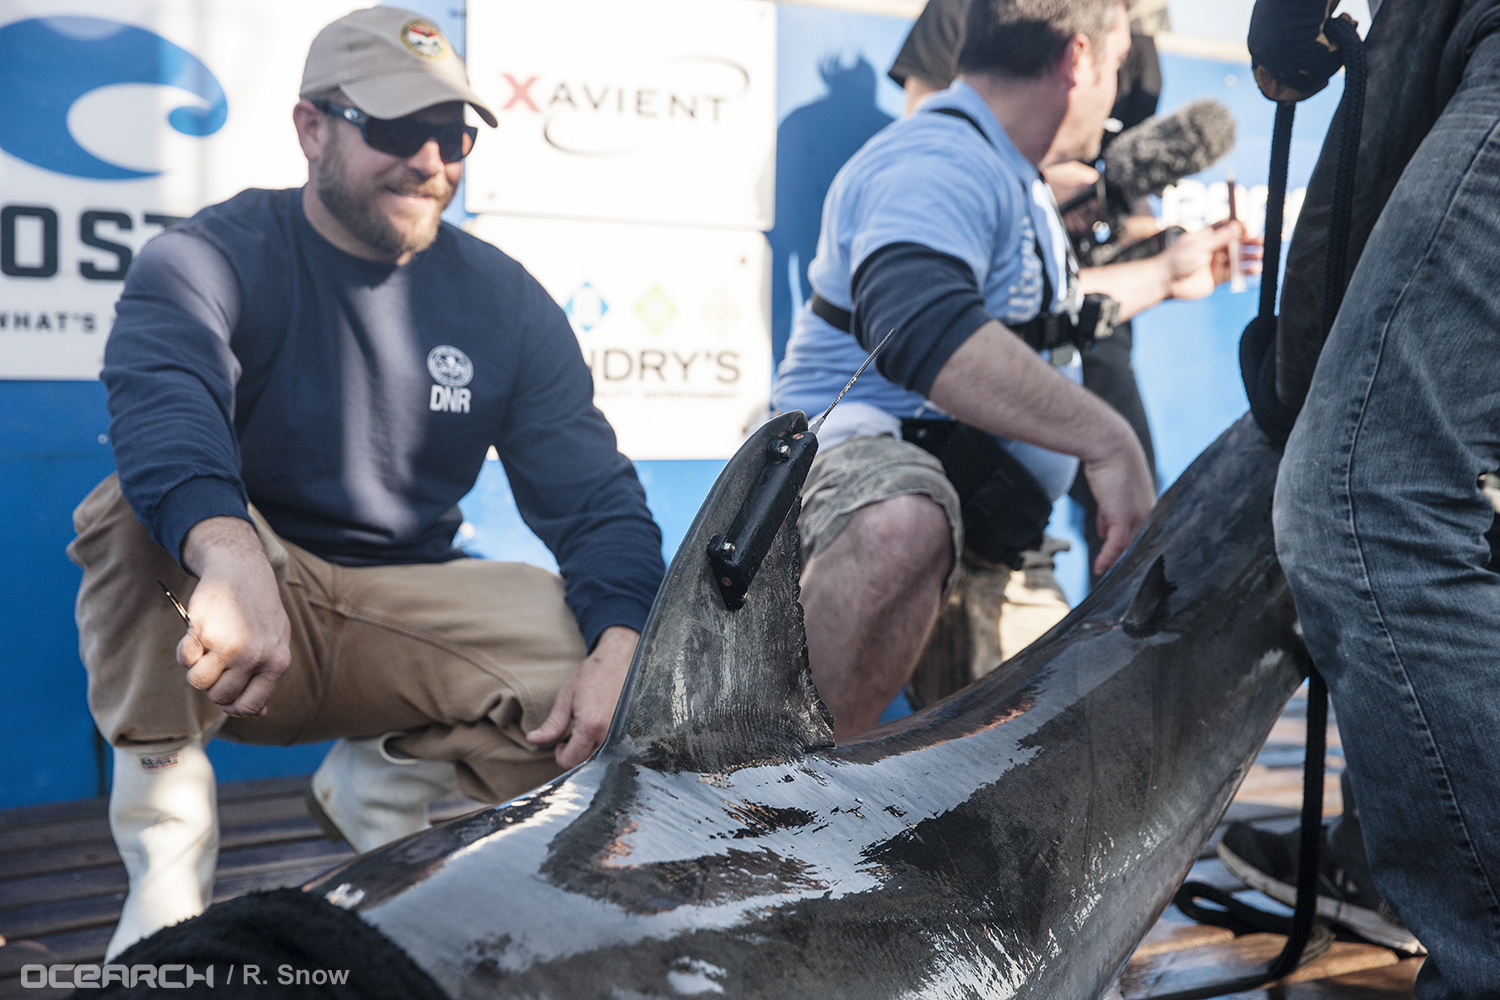 """SCDNR marine biologist Bryan Frazier sits with white shark """"Savannah,"""" who sports a newly affixed satellite transmitter on her dorsal fin. (Photo: OCEARCH/R. Snow)"""